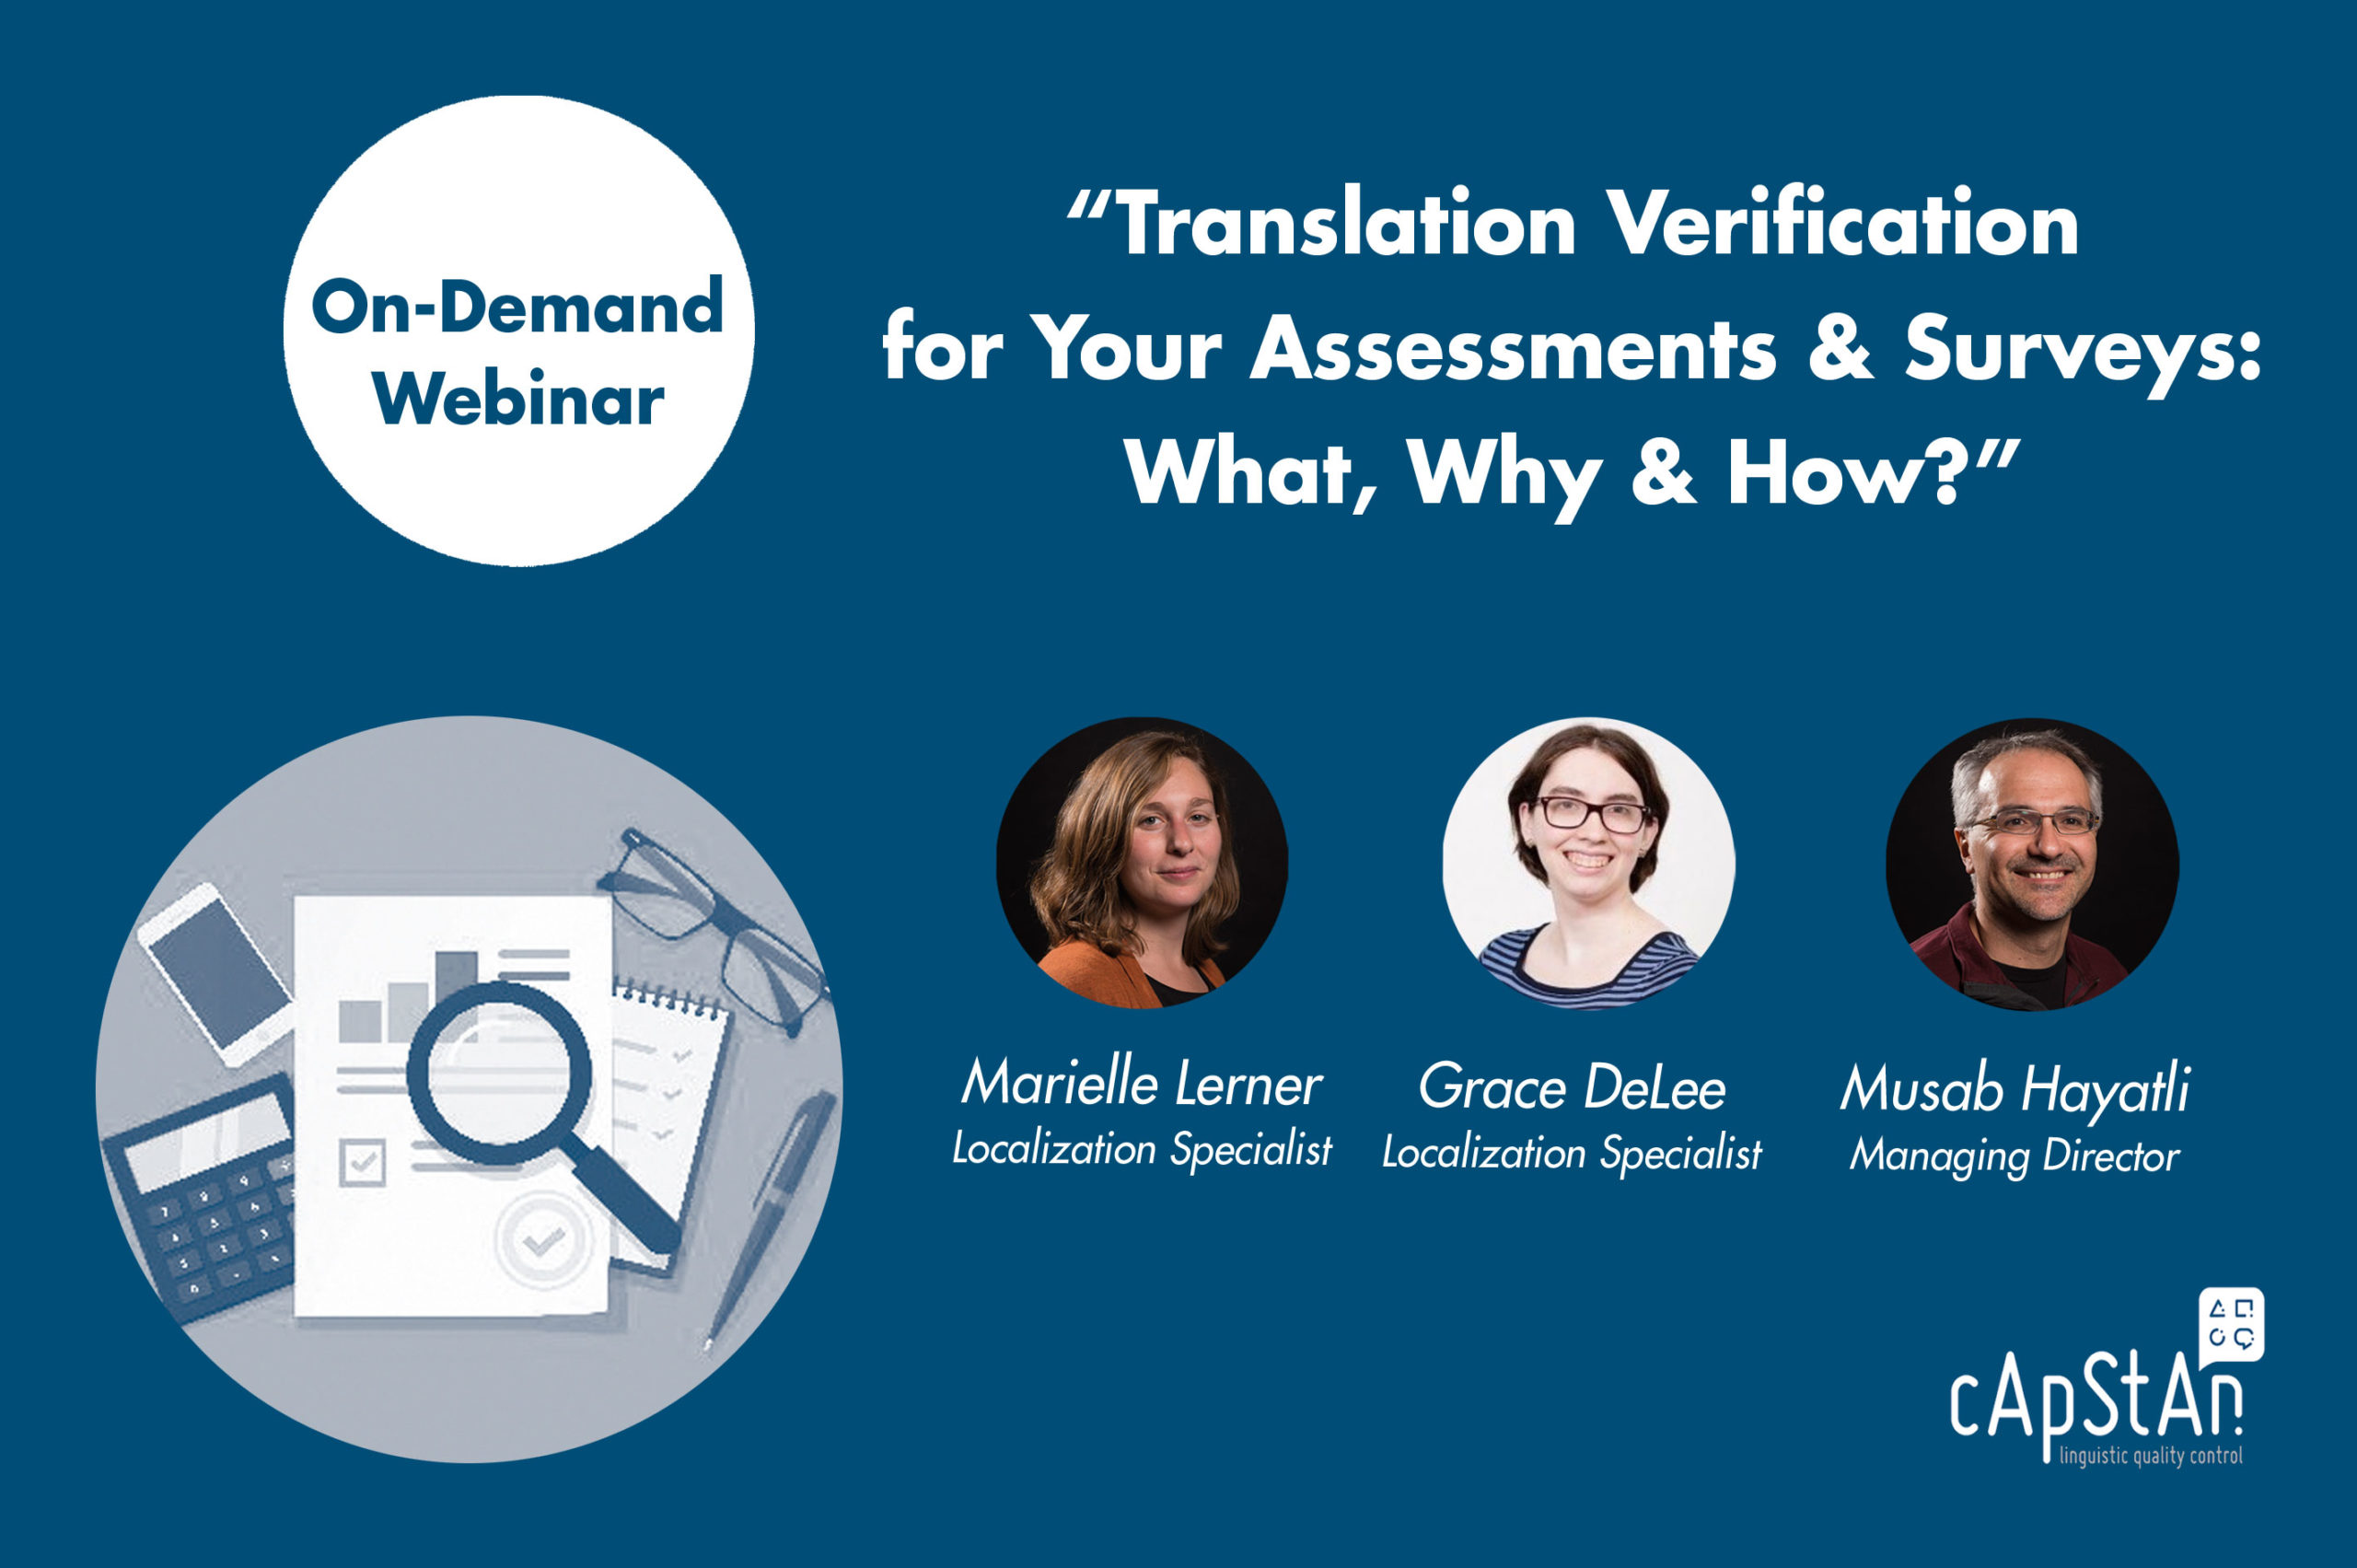 On-Demand Webinar | Translation Verification for Your Assessments & Surveys: What, Why & How?